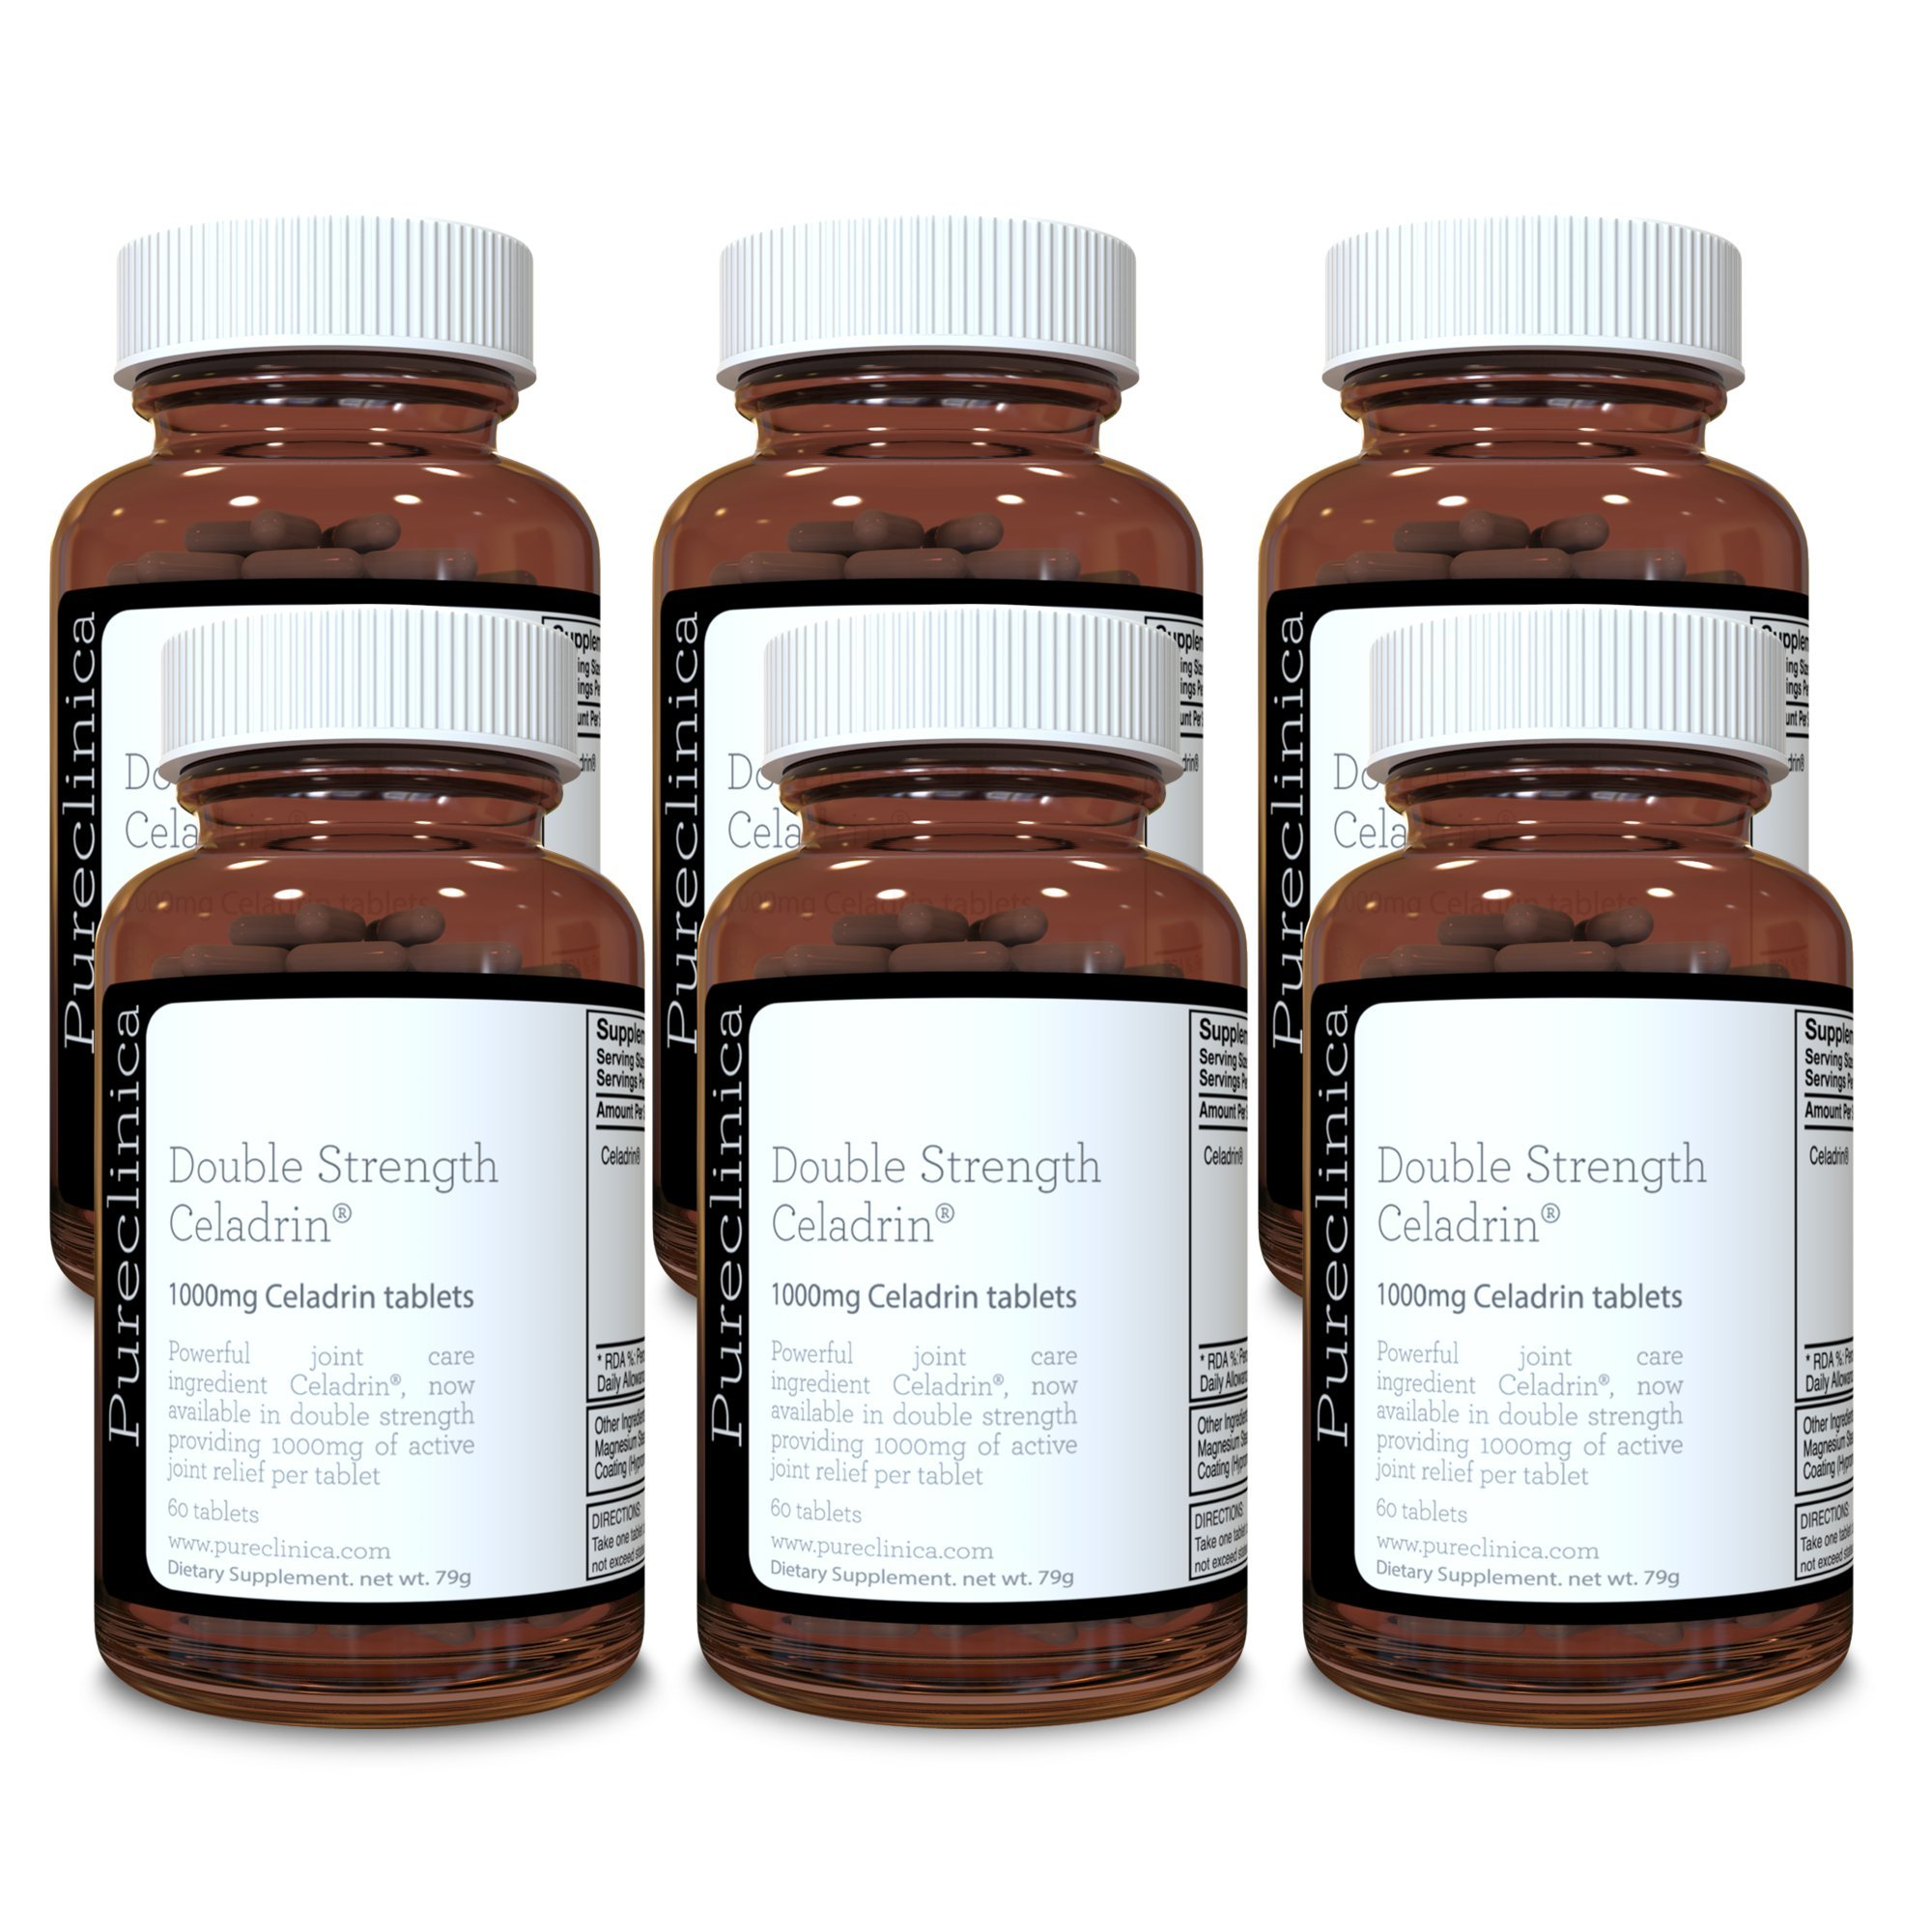 Double Strength Celadrin® - 12 month supply! (1000mg x 360 tablets) 6 bottles for a specially reduced price! SKU: CEL3x6